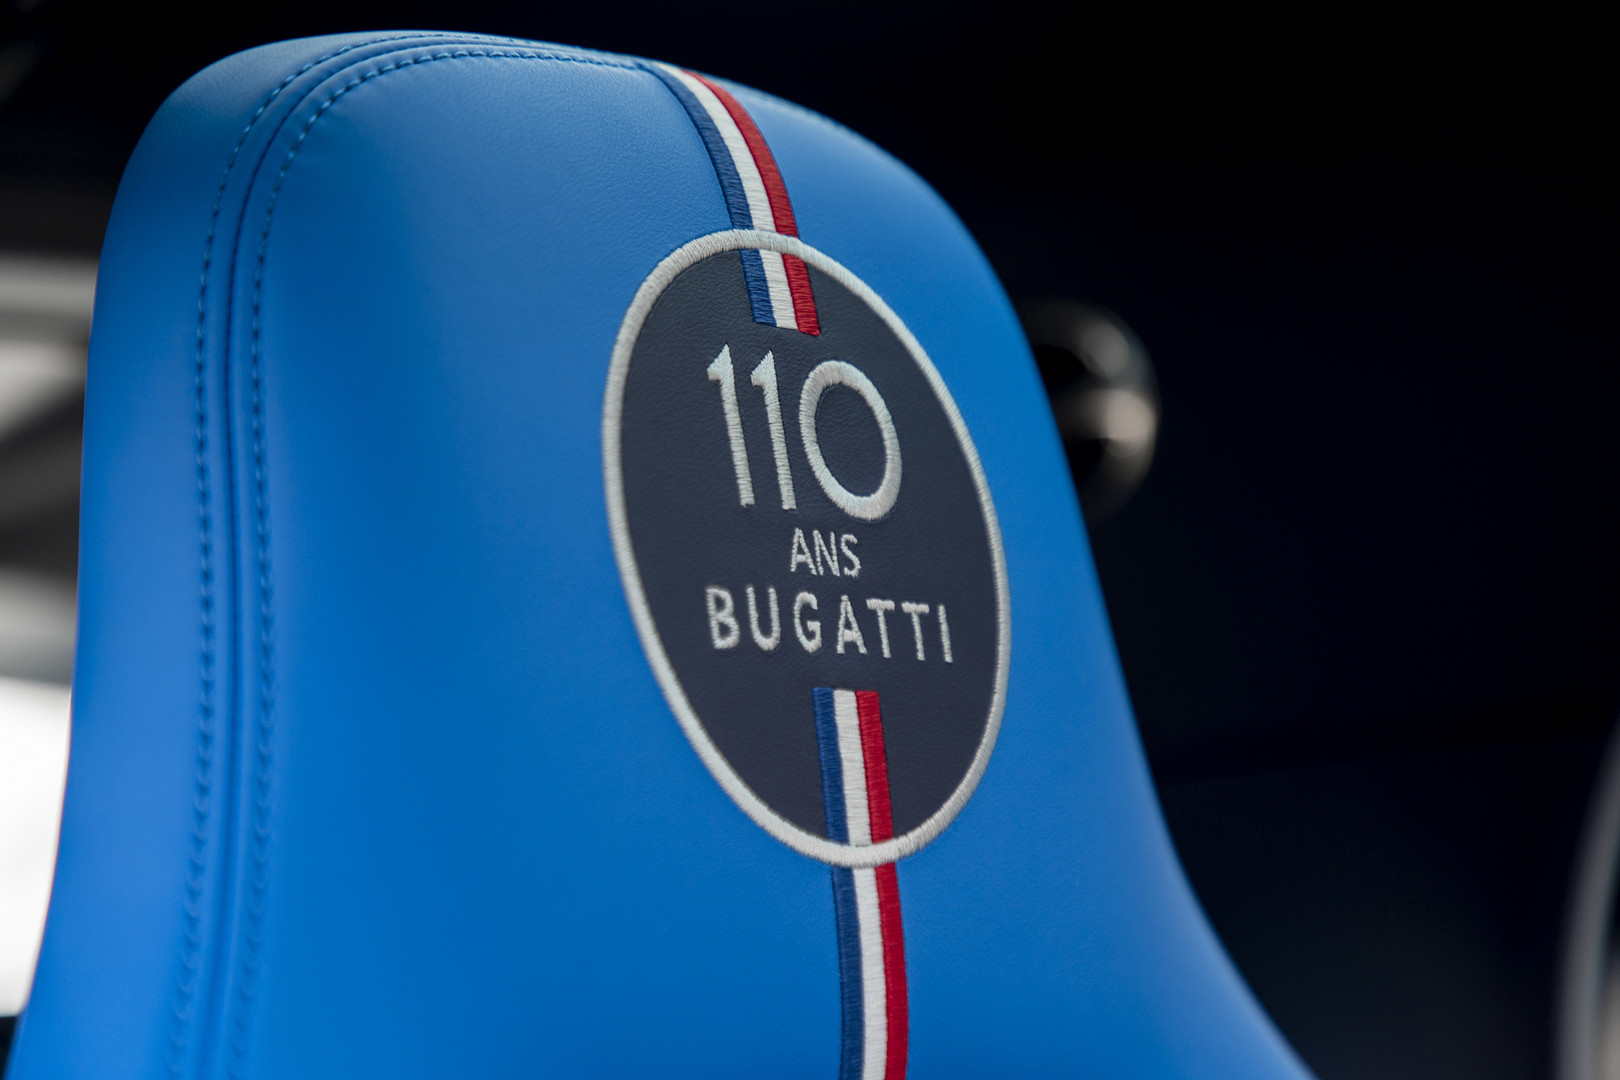 Bugatti celebrates 110th anniversary with special-edition Chiron